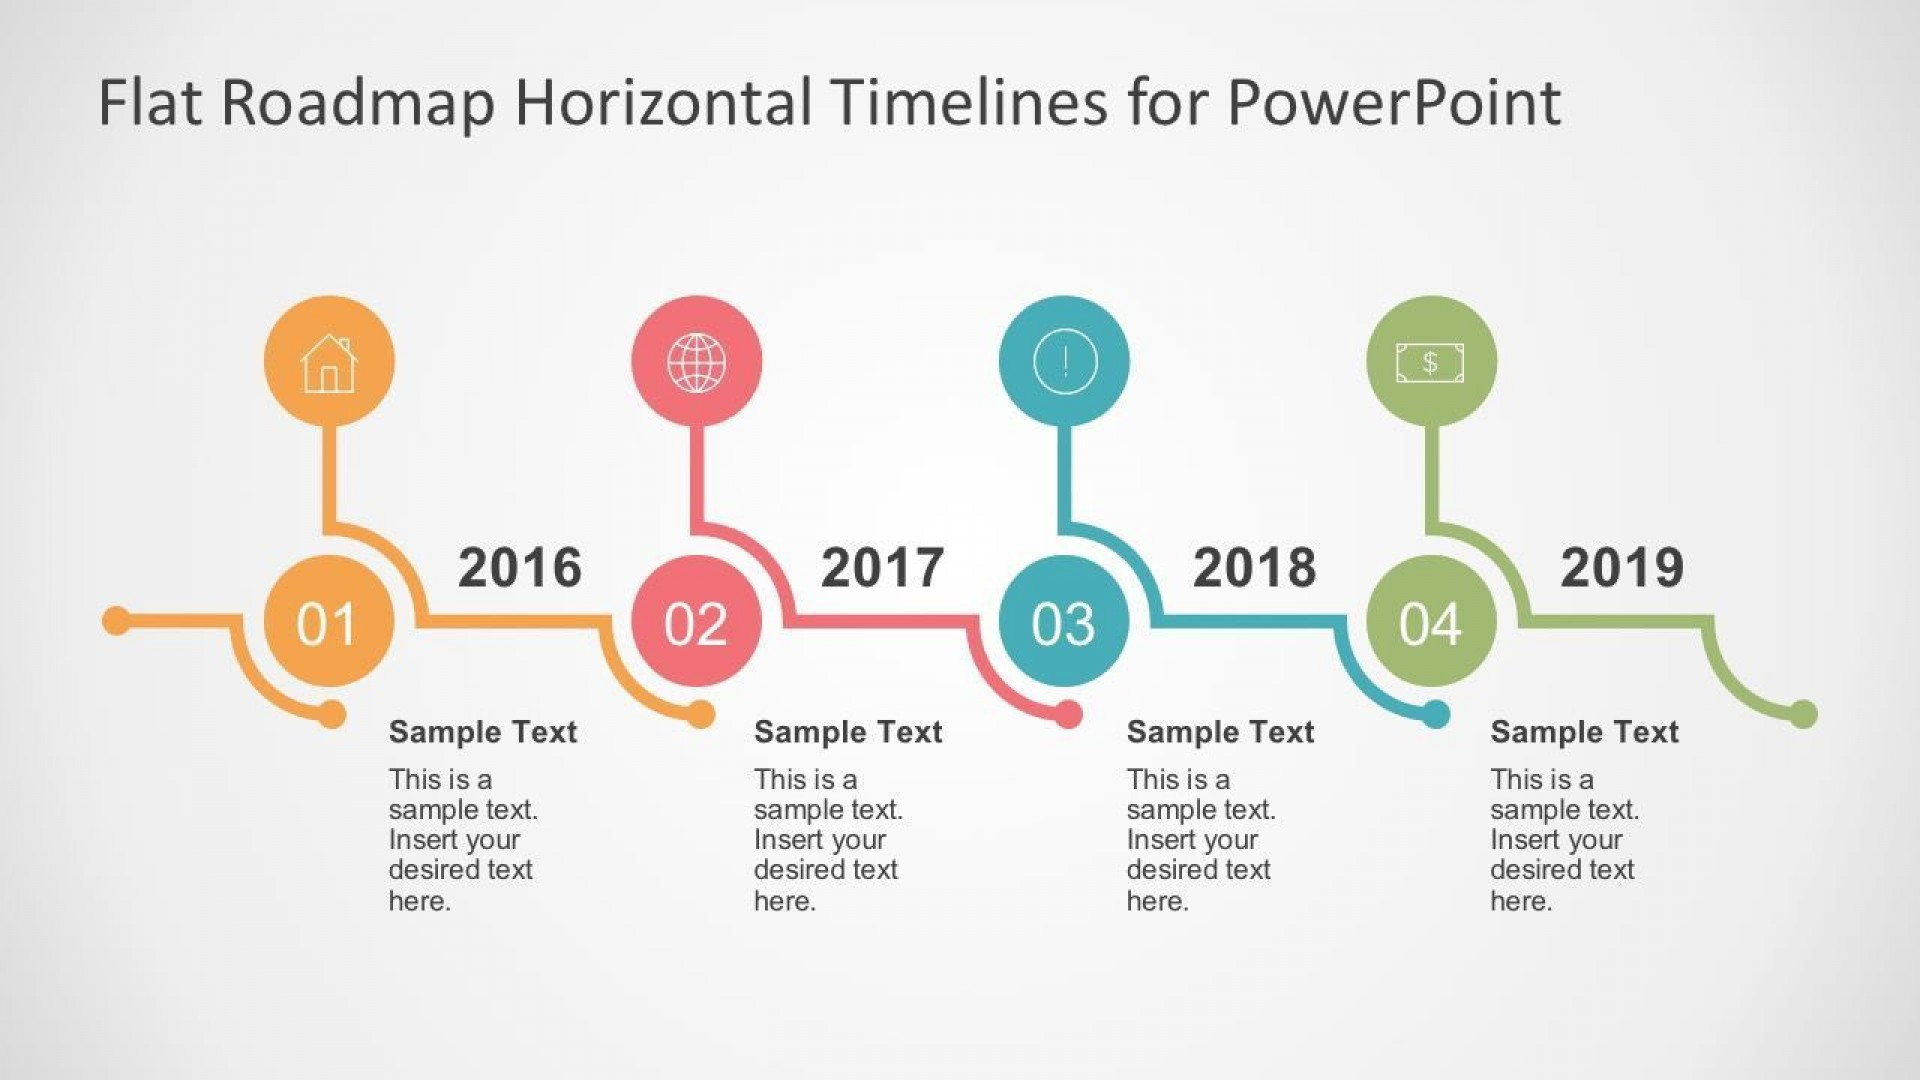 005 Singular Timeline Sample For Ppt Picture  Powerpoint Template 2010 Example1920